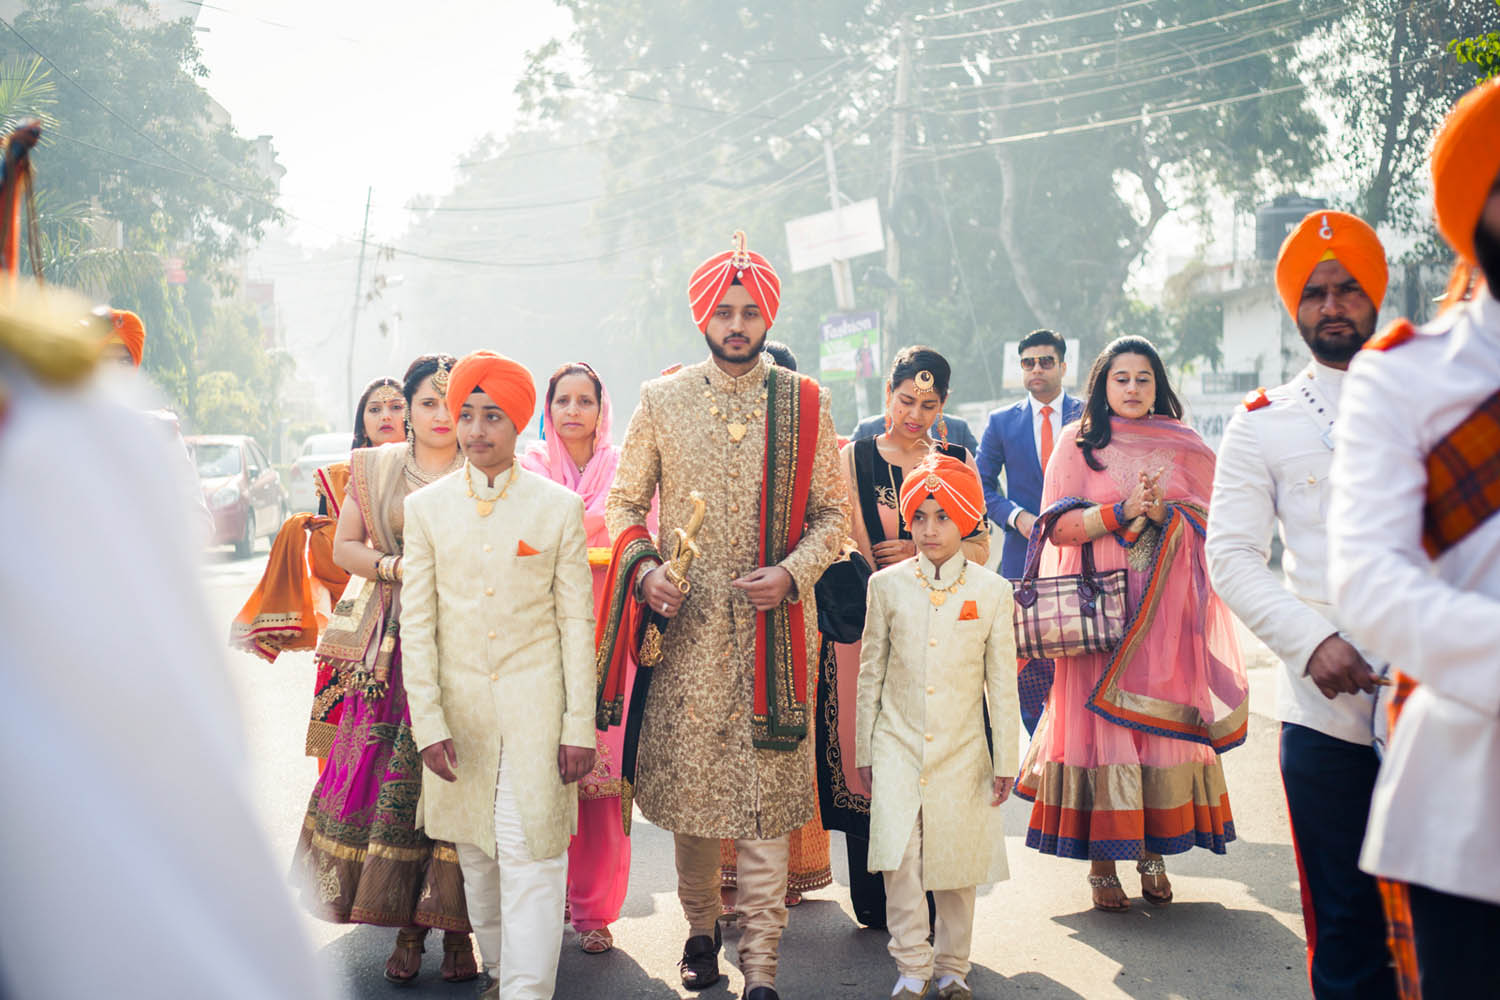 punjab_wedding33.jpg